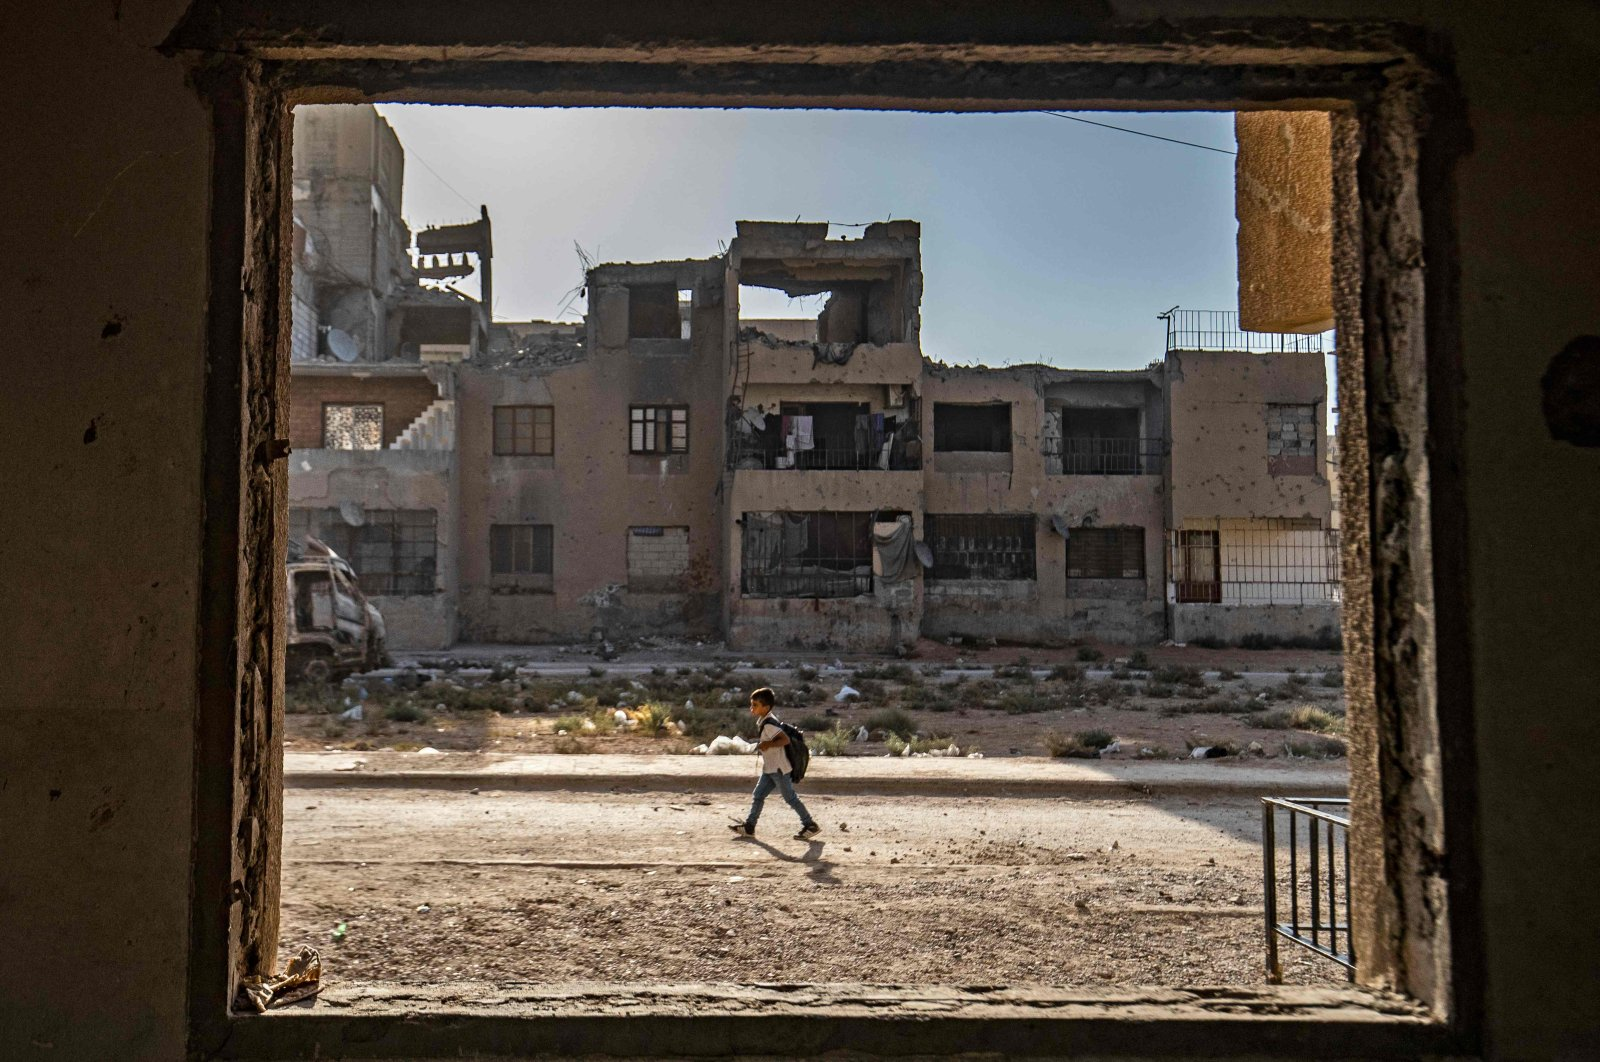 A Syrian student walks to school past damaged buildings in the northern city of Raqqa, Syria, Sept. 23, 2021. (AFP Photo)